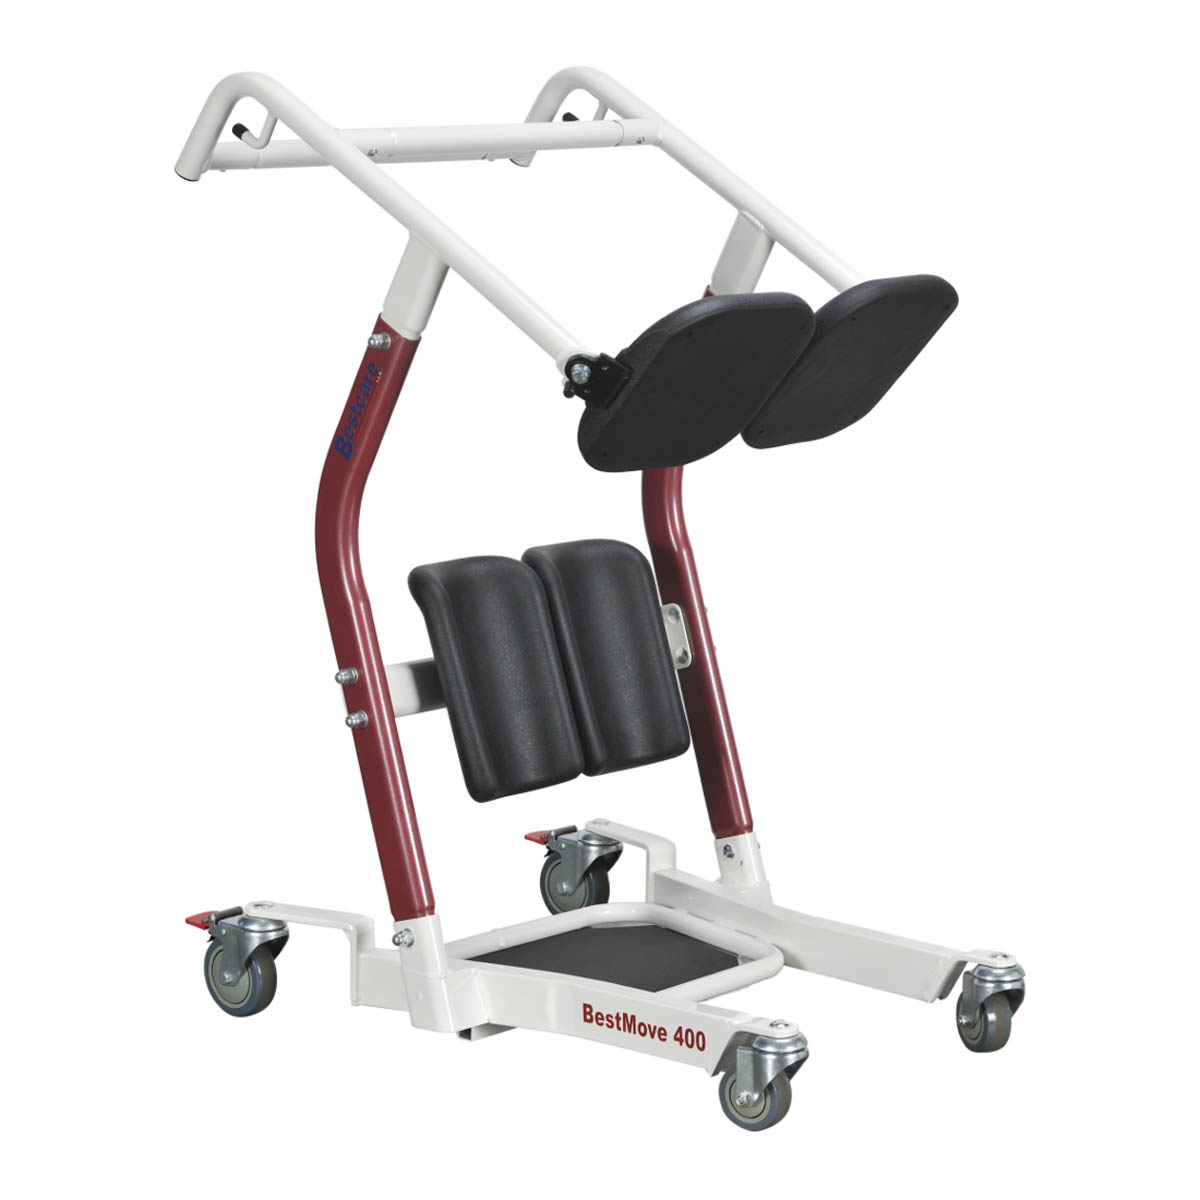 Bestmove Spryte 400 Standing Transfer Aid